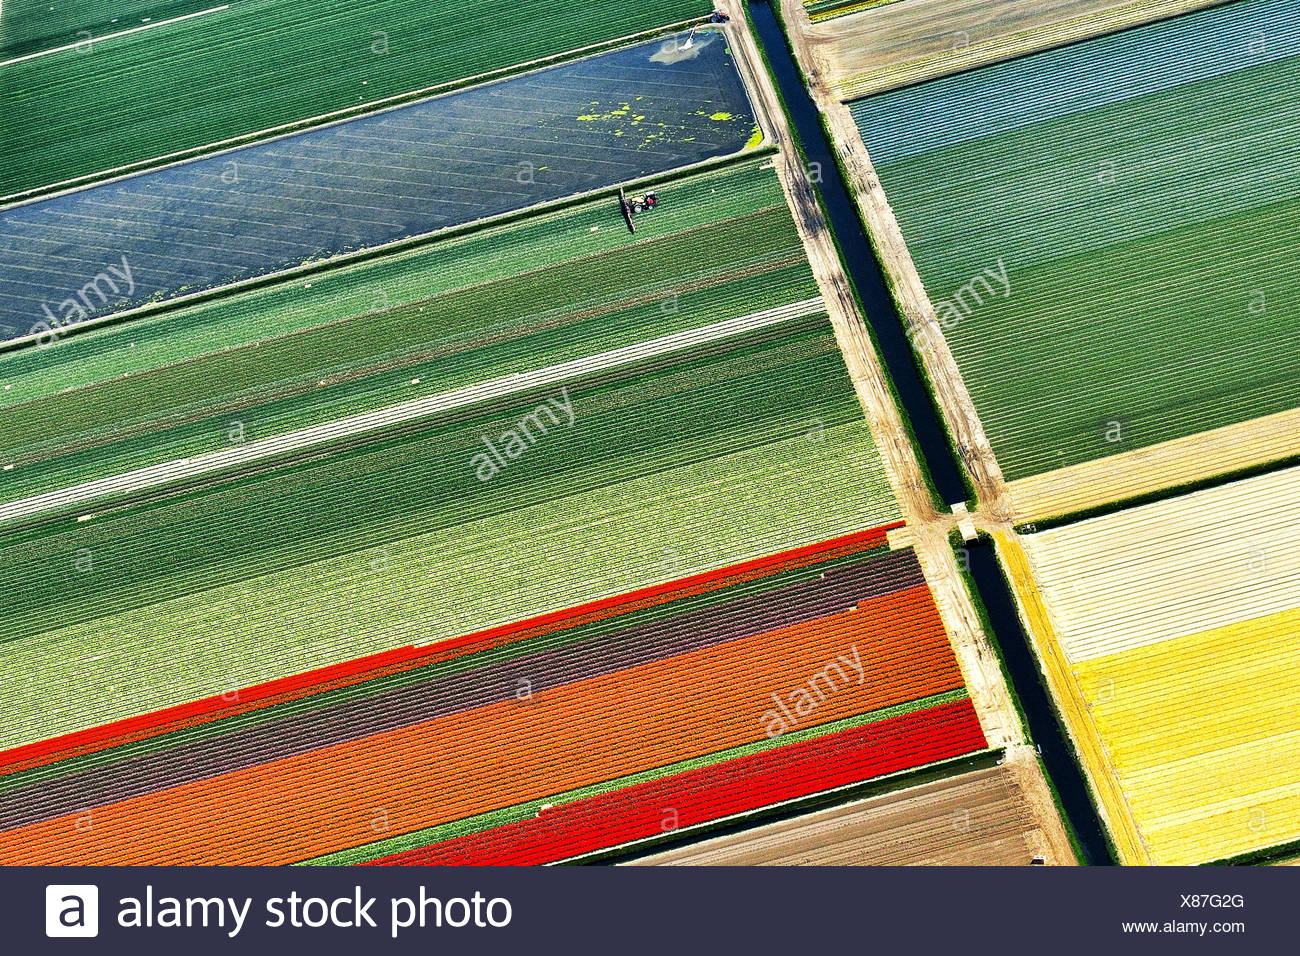 Netherlands, North Holland, Aerial view of tulip fields - Stock Image